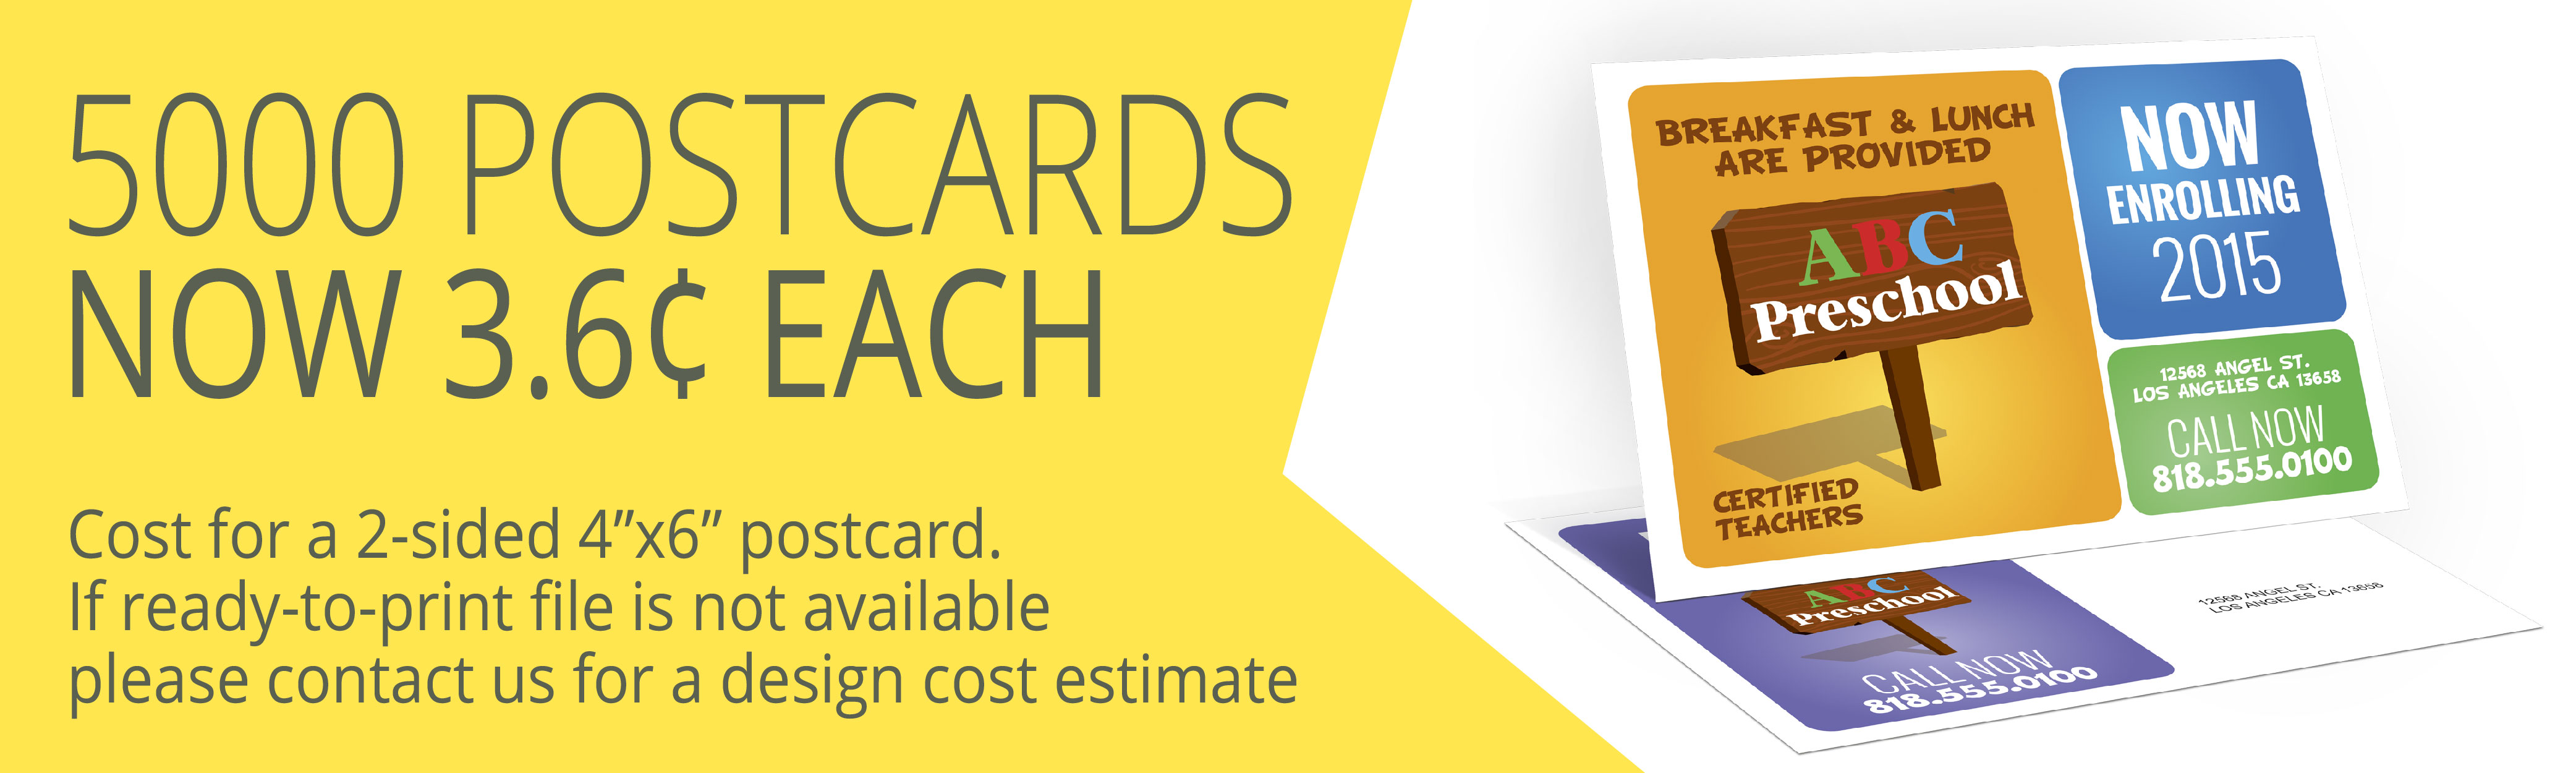 ADPrint | AD-Print | Business Cards, Brochures, Postcards ...